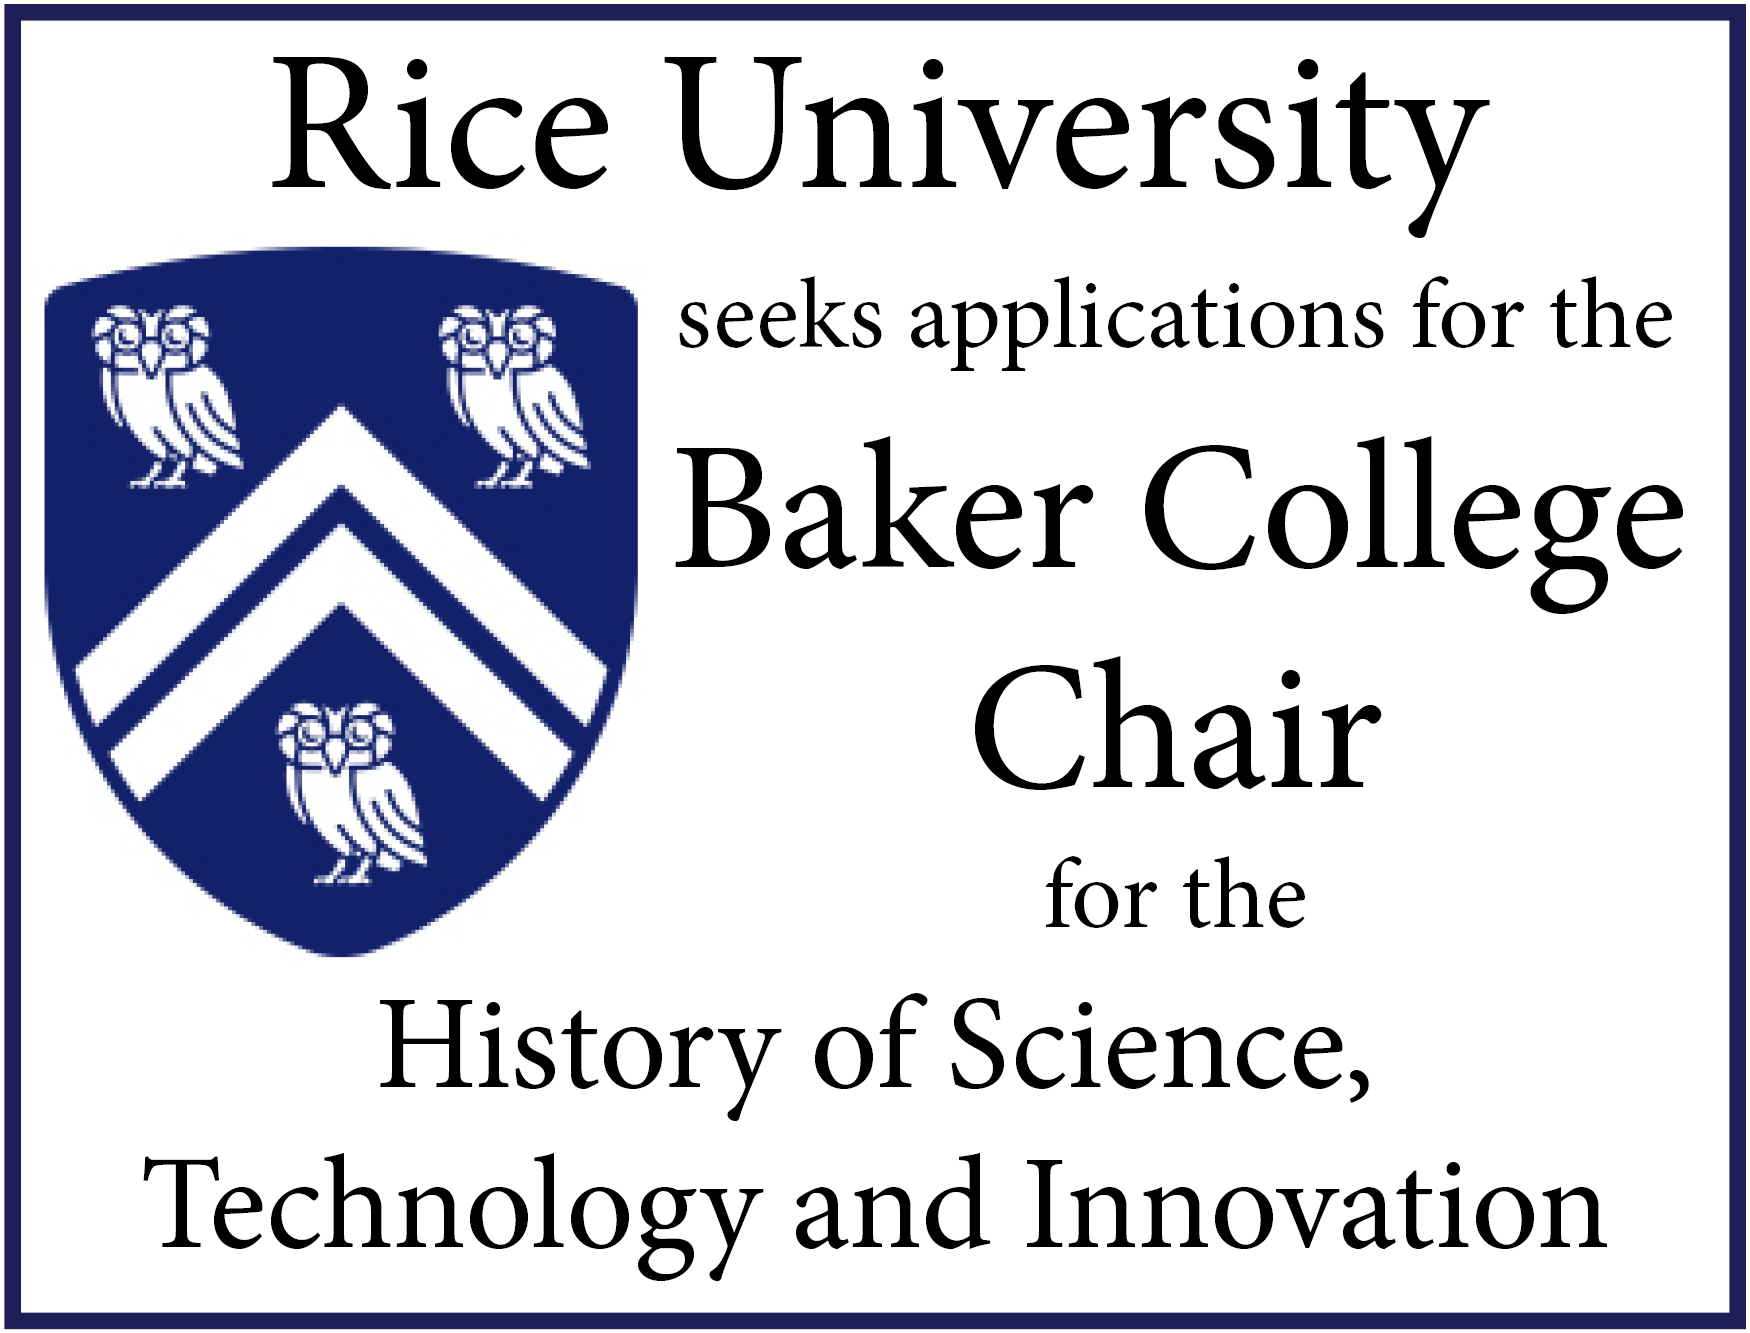 Rice University seeks applications for the Baker College Chair.""